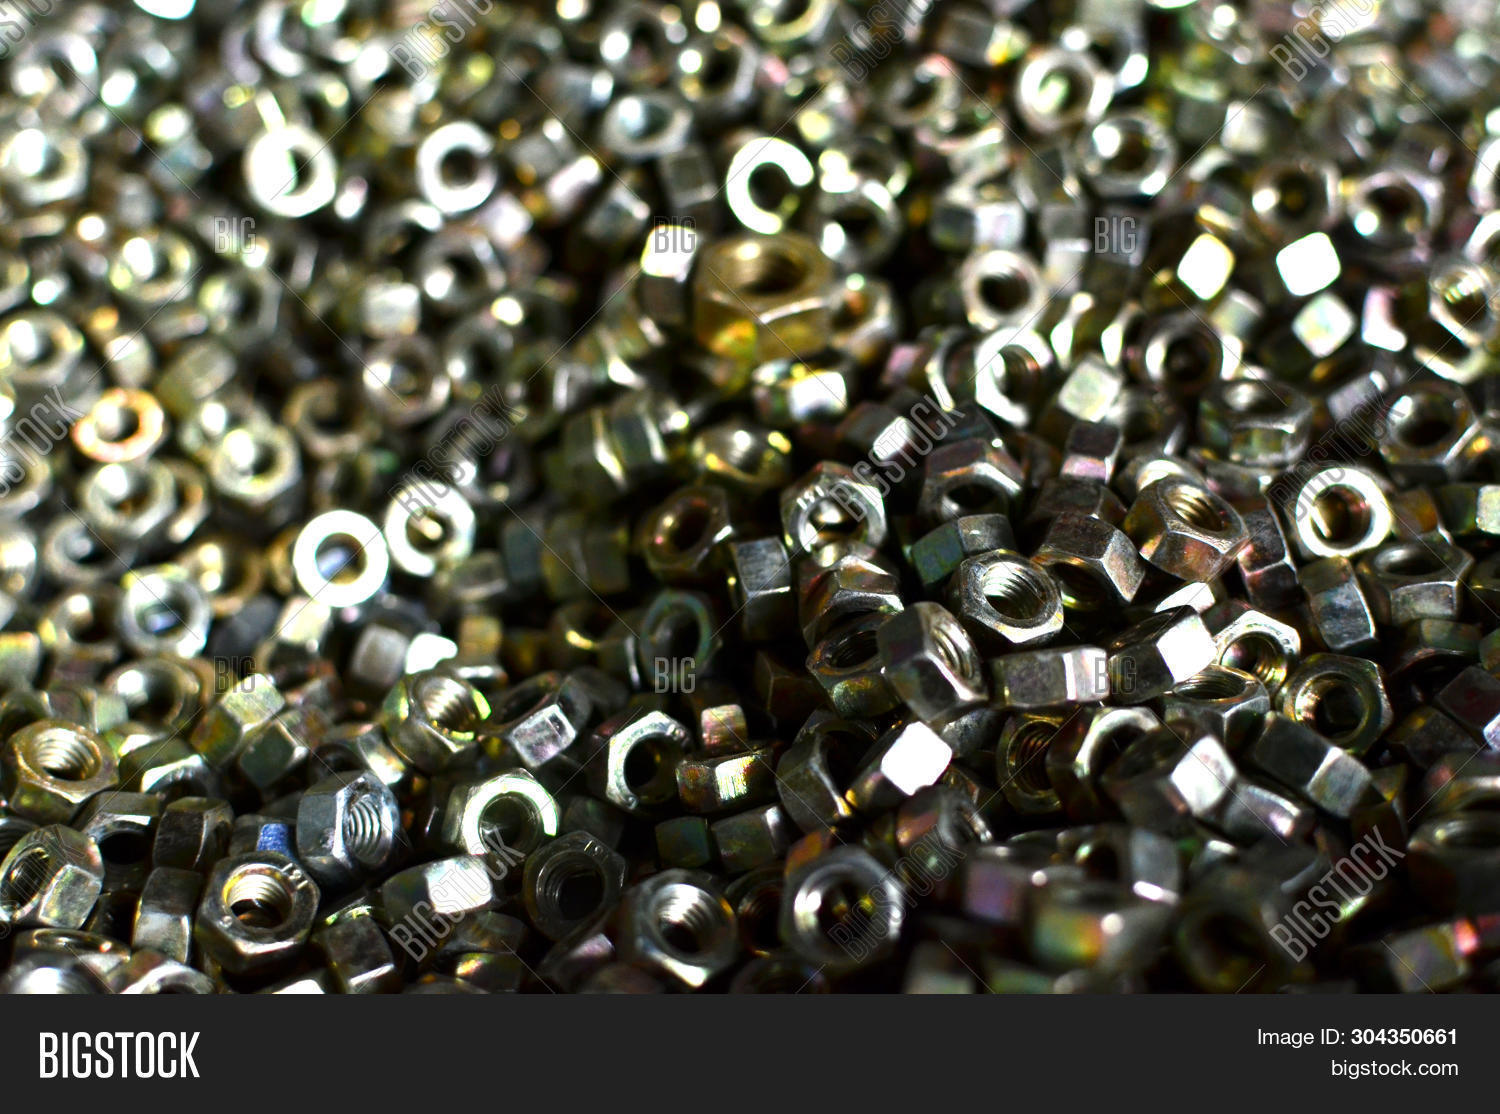 Background Screw Bolts Image & Photo (Free Trial)   Bigstock